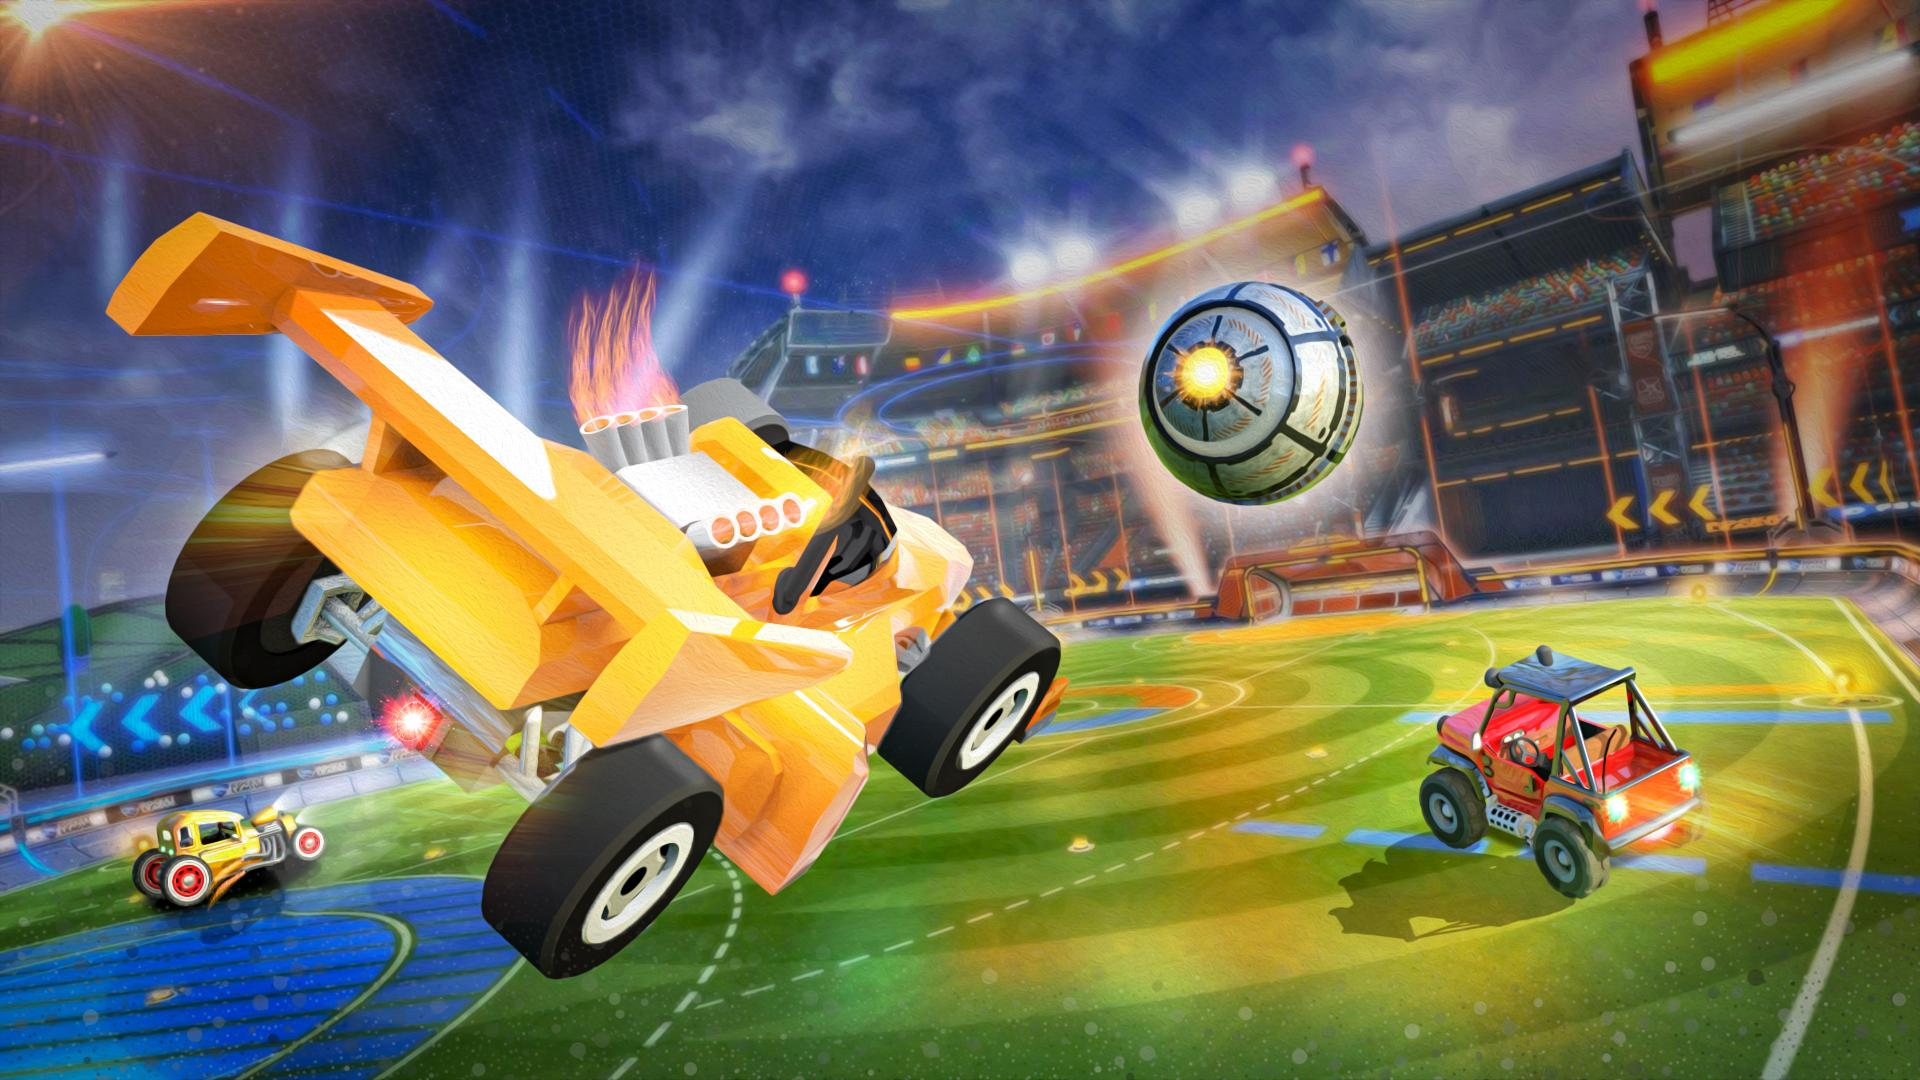 Rocket Car Soccer league - Super Football 1.7 Screenshot 6